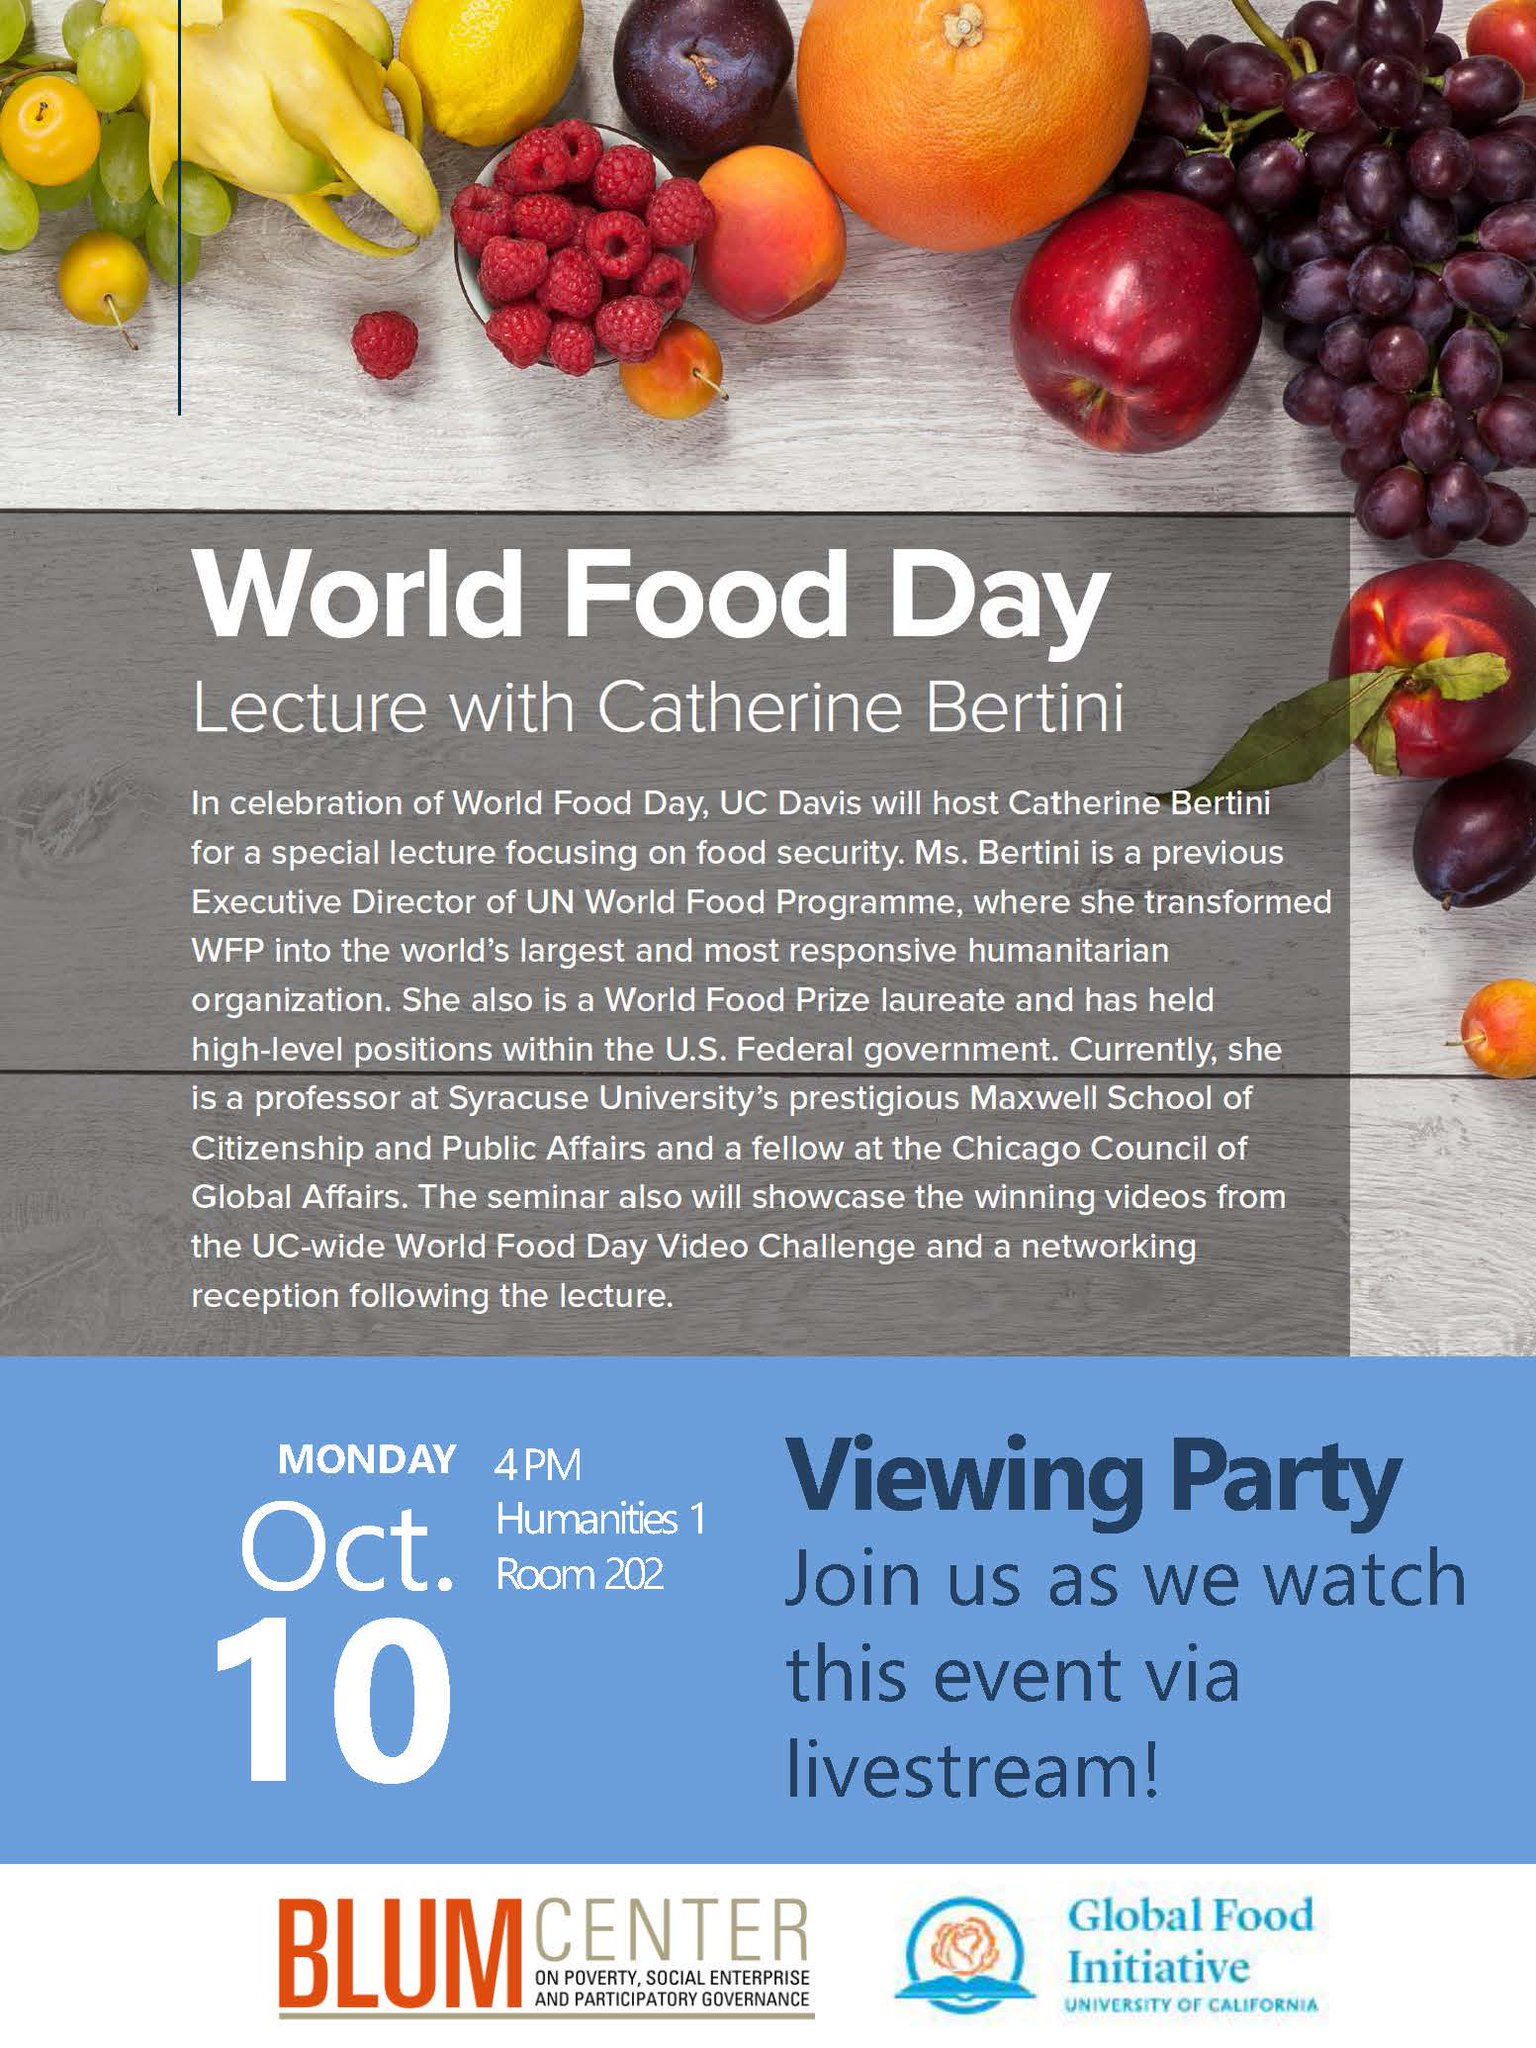 Today at 4pm, learn about food security on #WorldFoodDay and watch videos from the #globalfood challenge. https://t.co/lqRG85x4zS